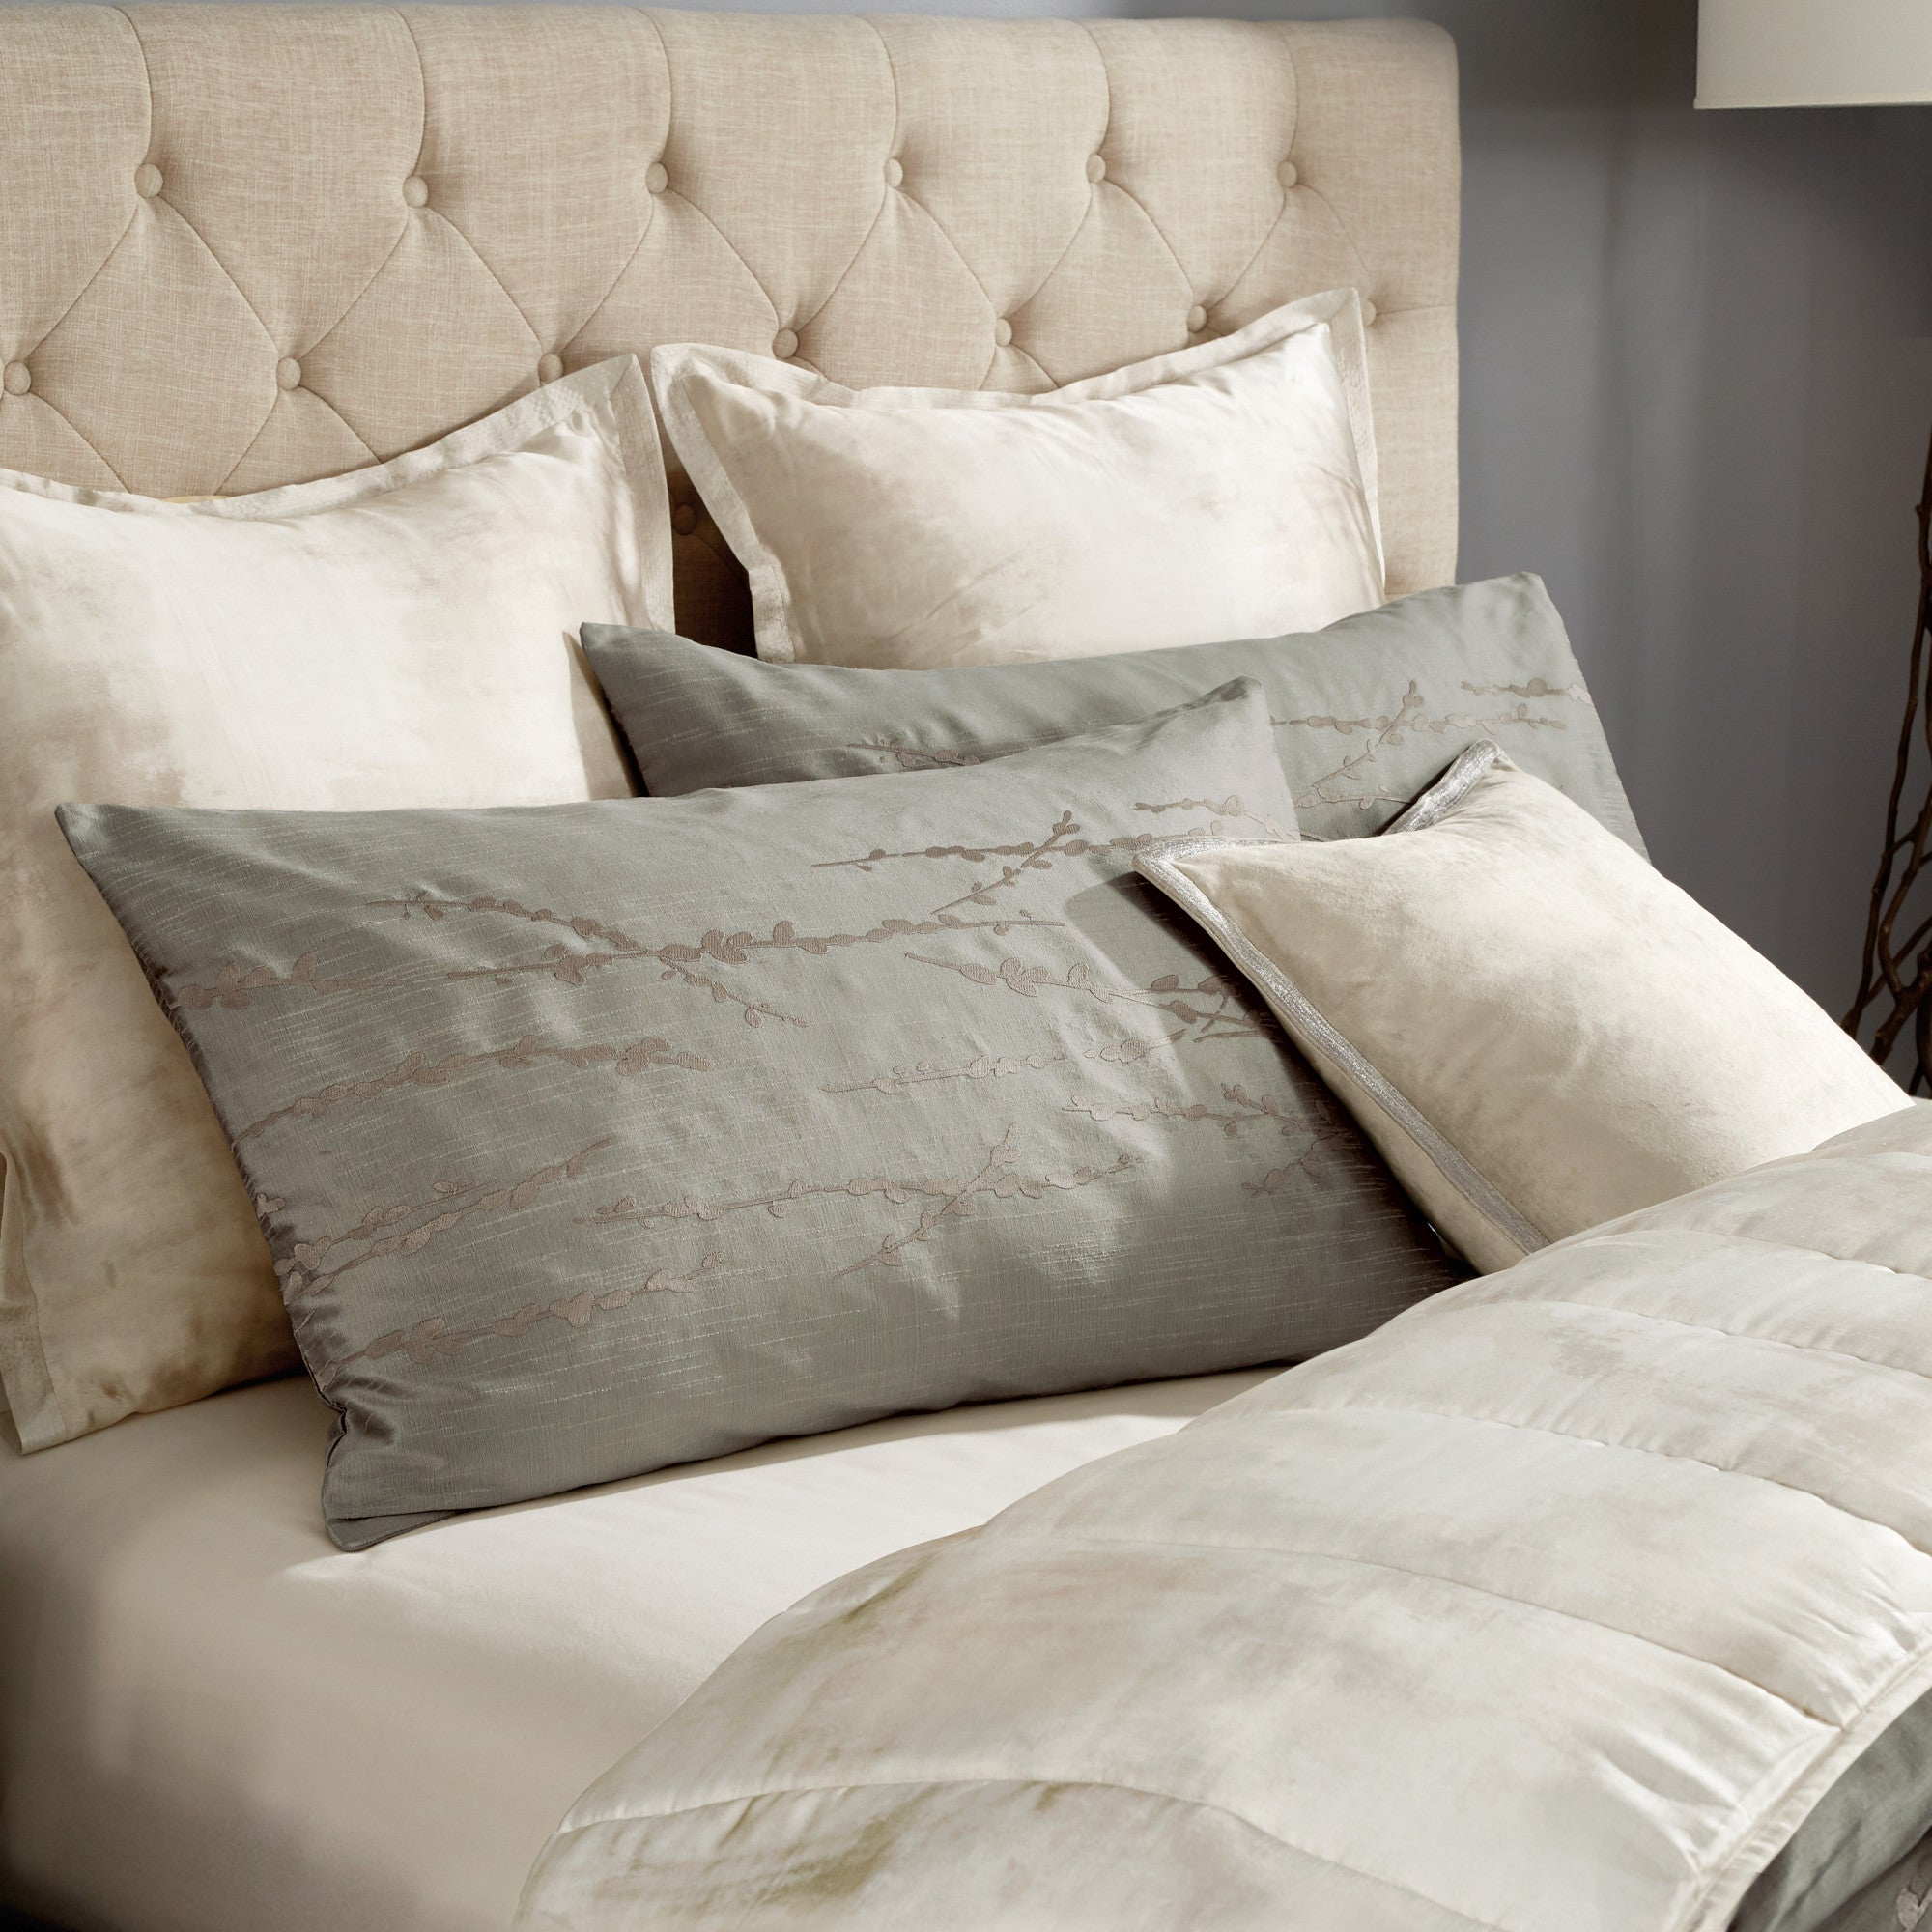 Willow Green Duvet - Michael Aram [Luxury comforter Sets] [by Latest Bedding]